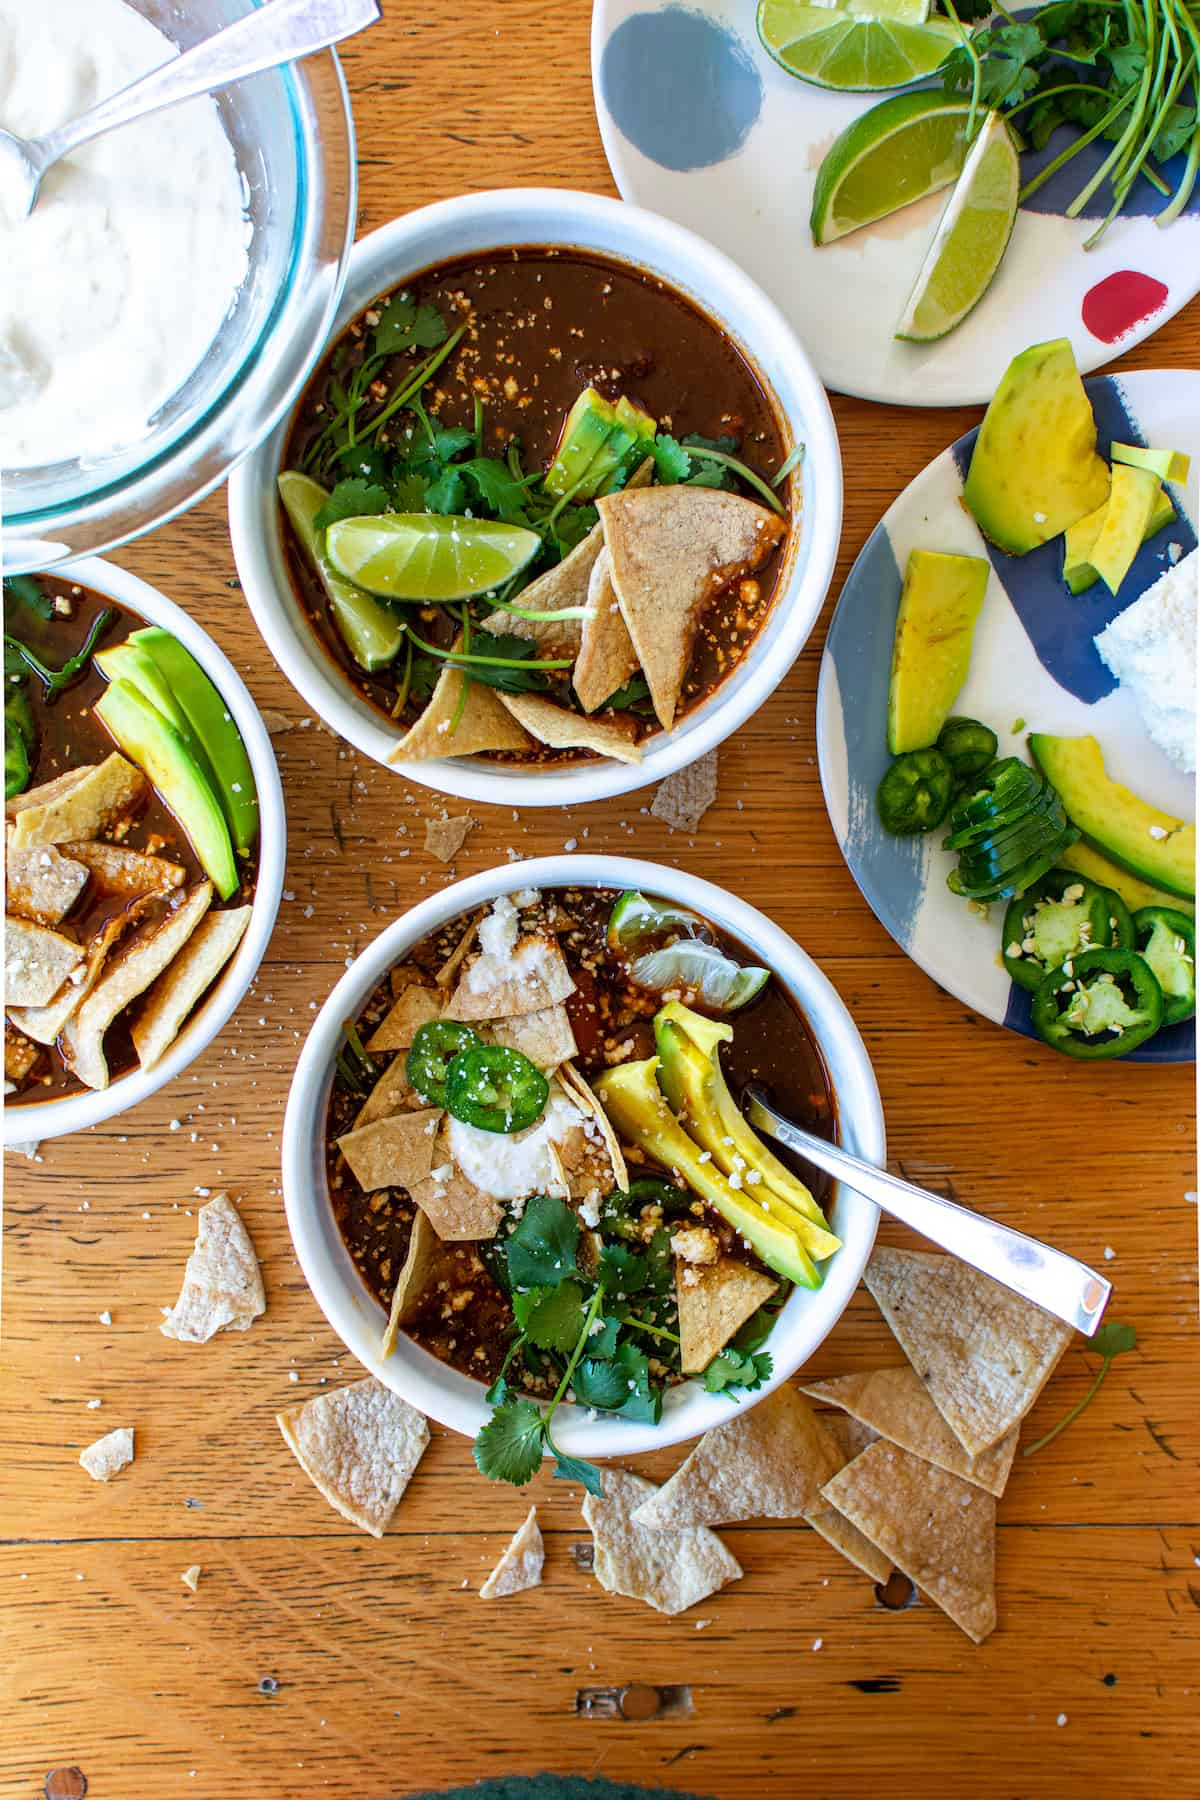 Overhead image of two bowls of chicken tortilla soup garnished with avocado, cilantro, and lime sitting on a wood table.